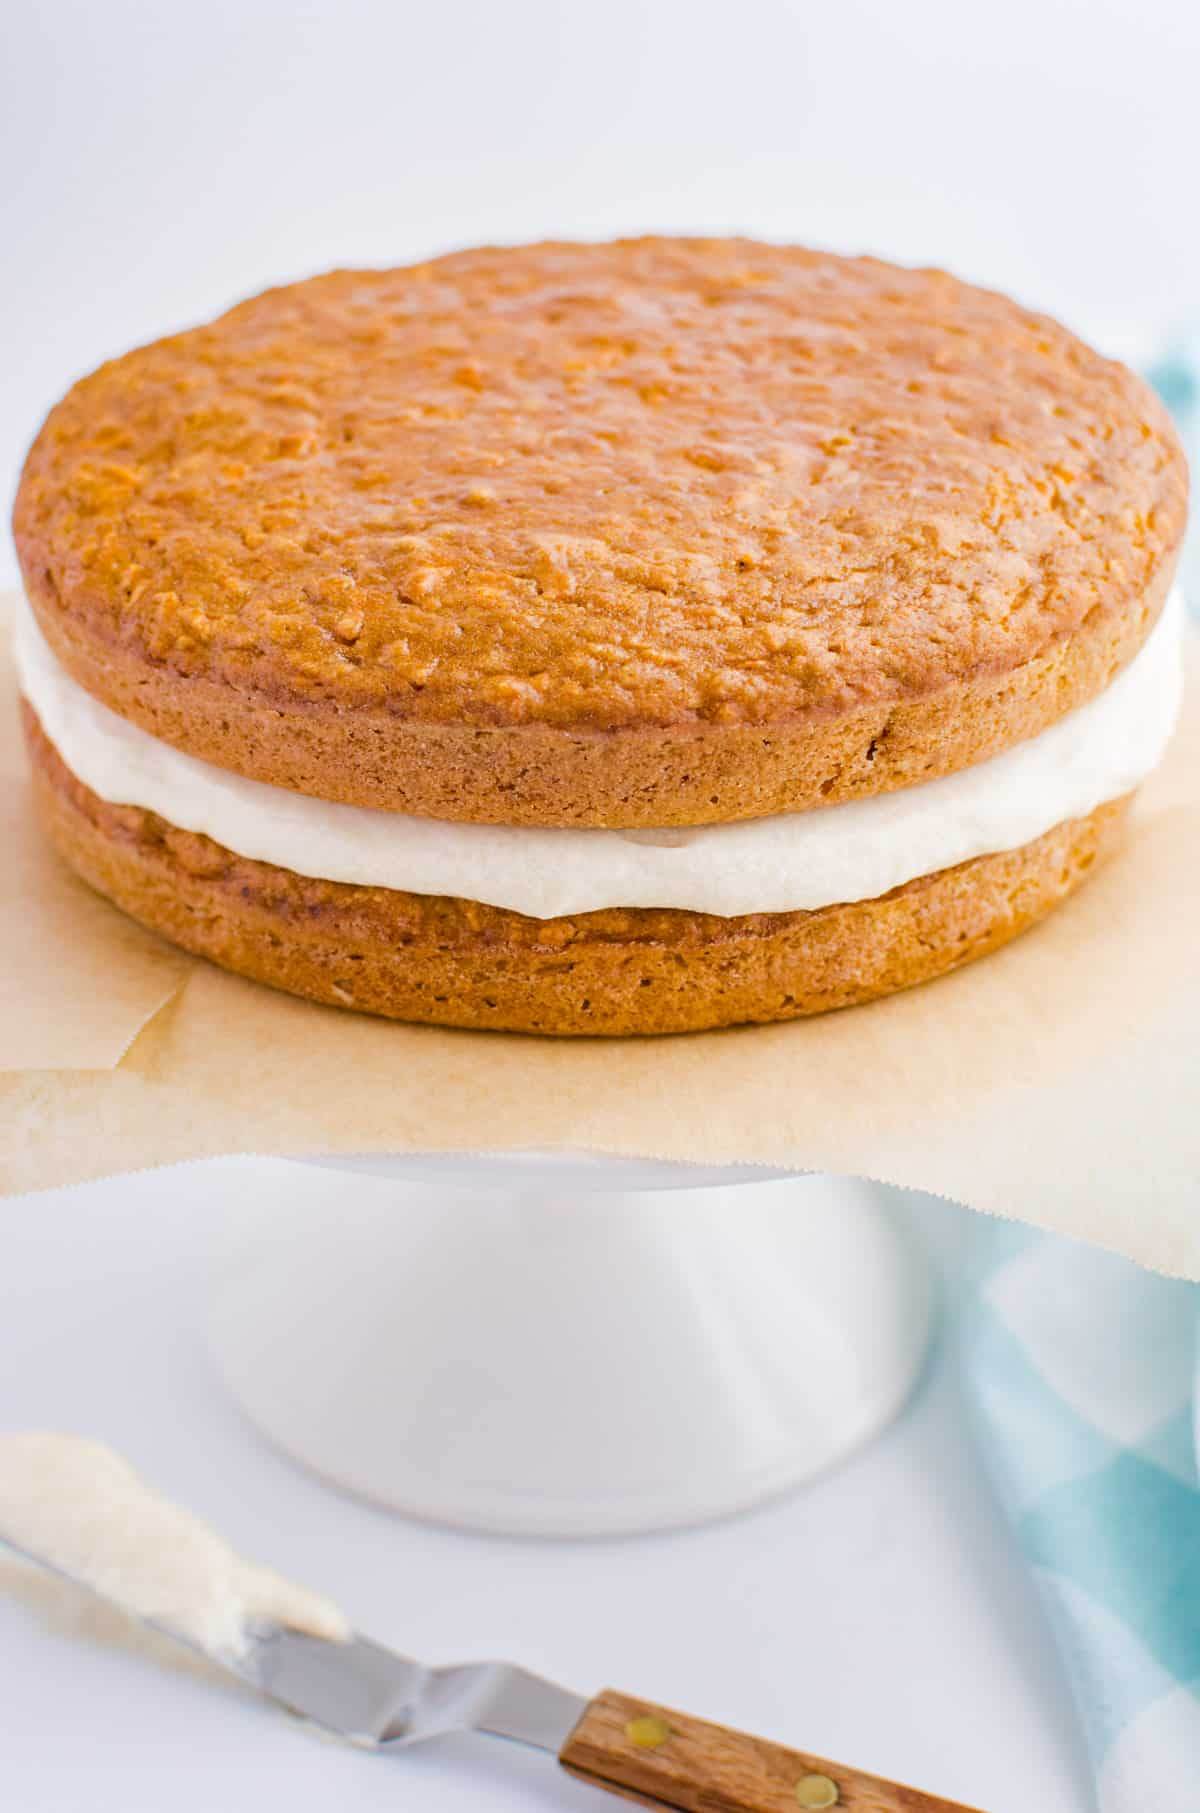 A 2 layer round cake with white frosting in the middle.